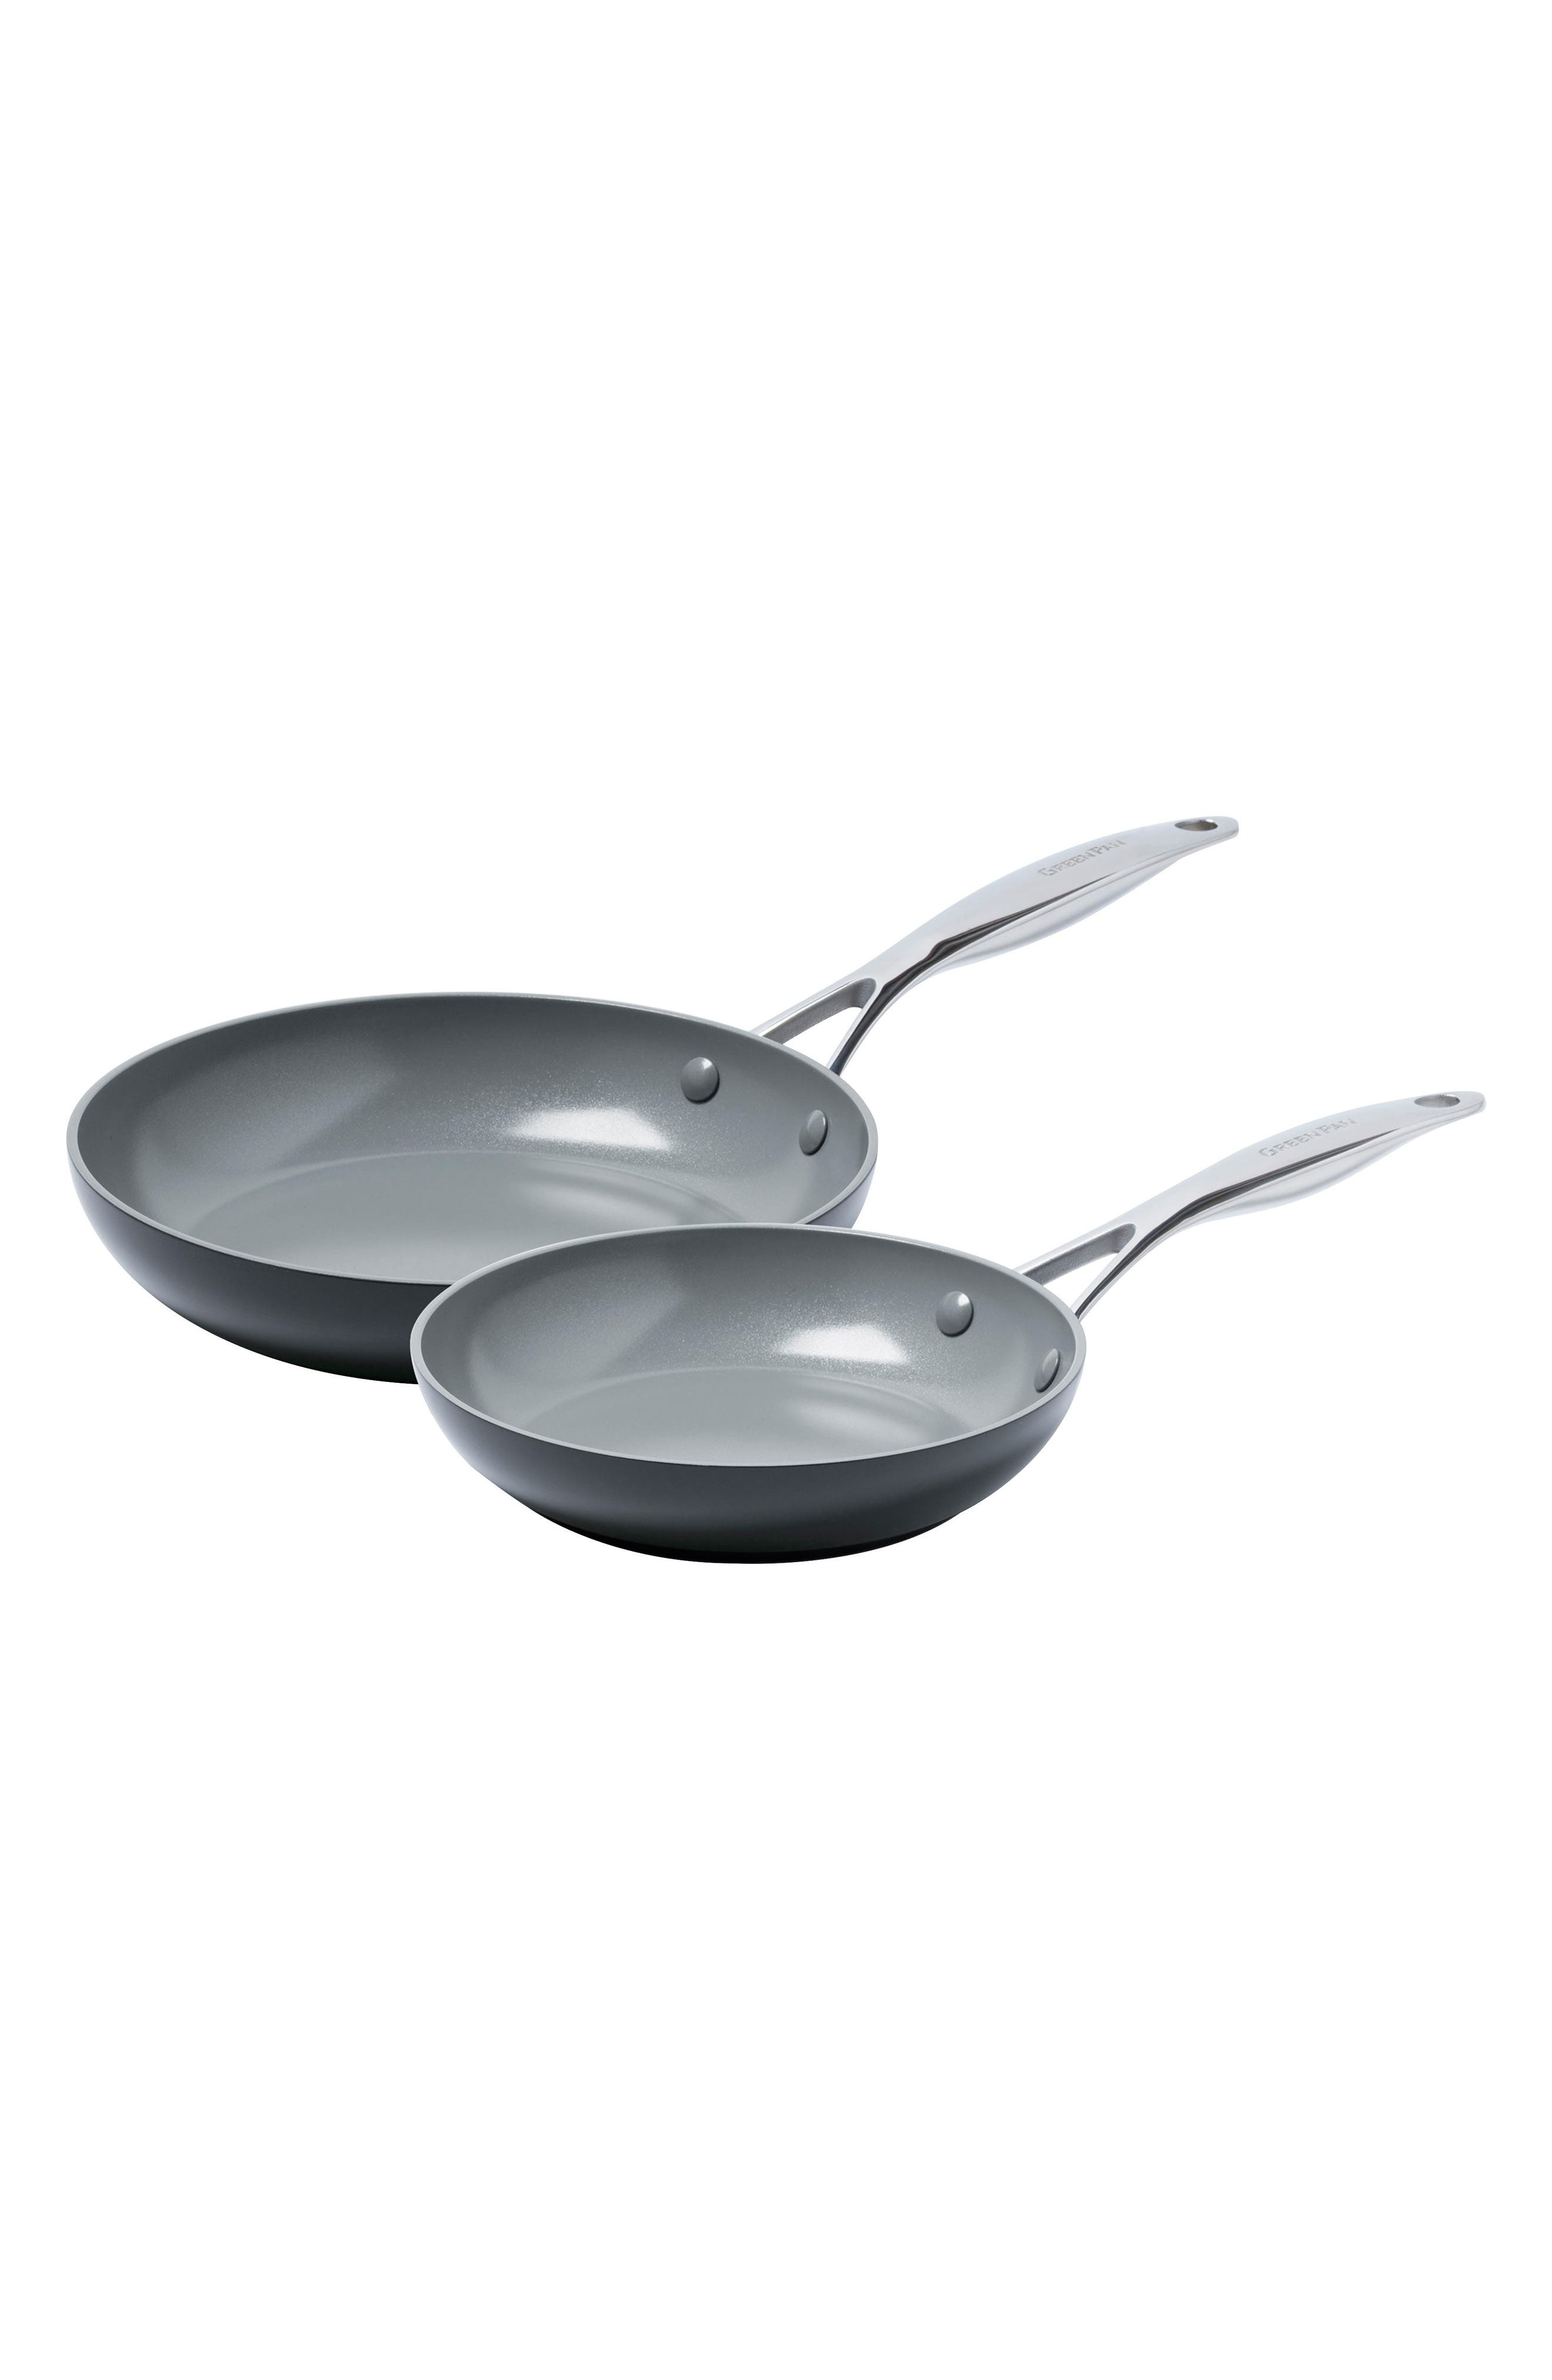 Valencia Pro 8-Inch & 10-Inch Anodized Aluminum Ceramic Nonstick Frying Pan Set,                             Main thumbnail 1, color,                             Black